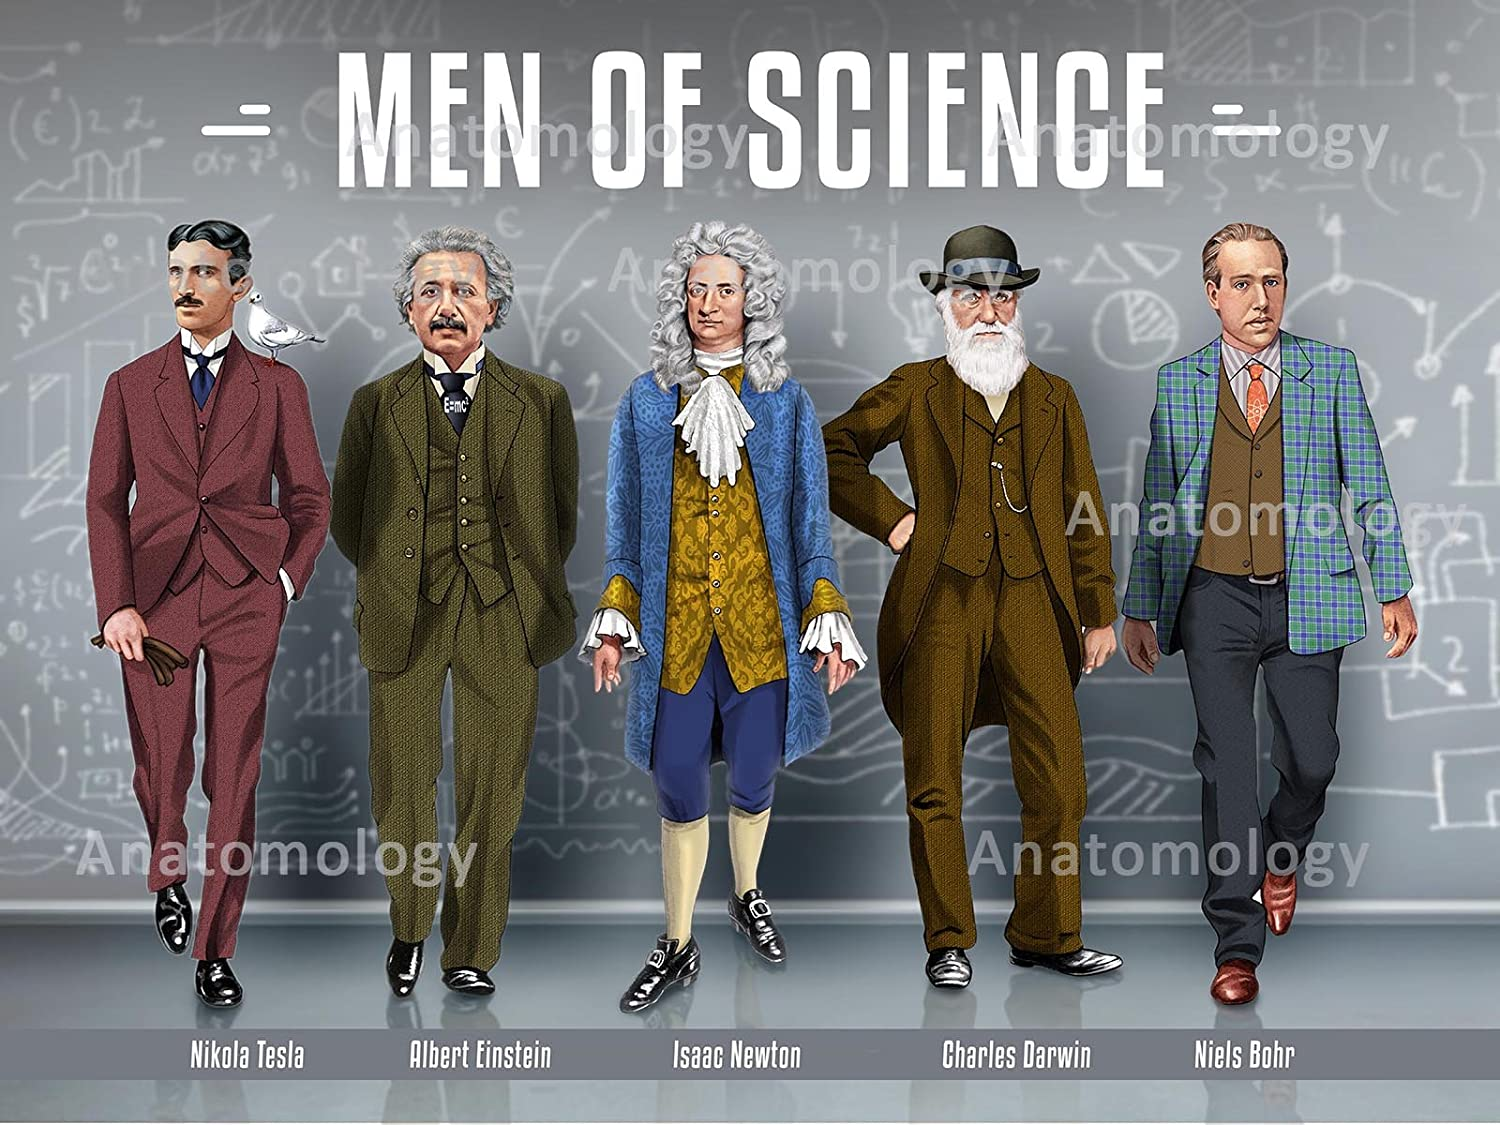 Men of Science Poster (smaller size) Anatomology